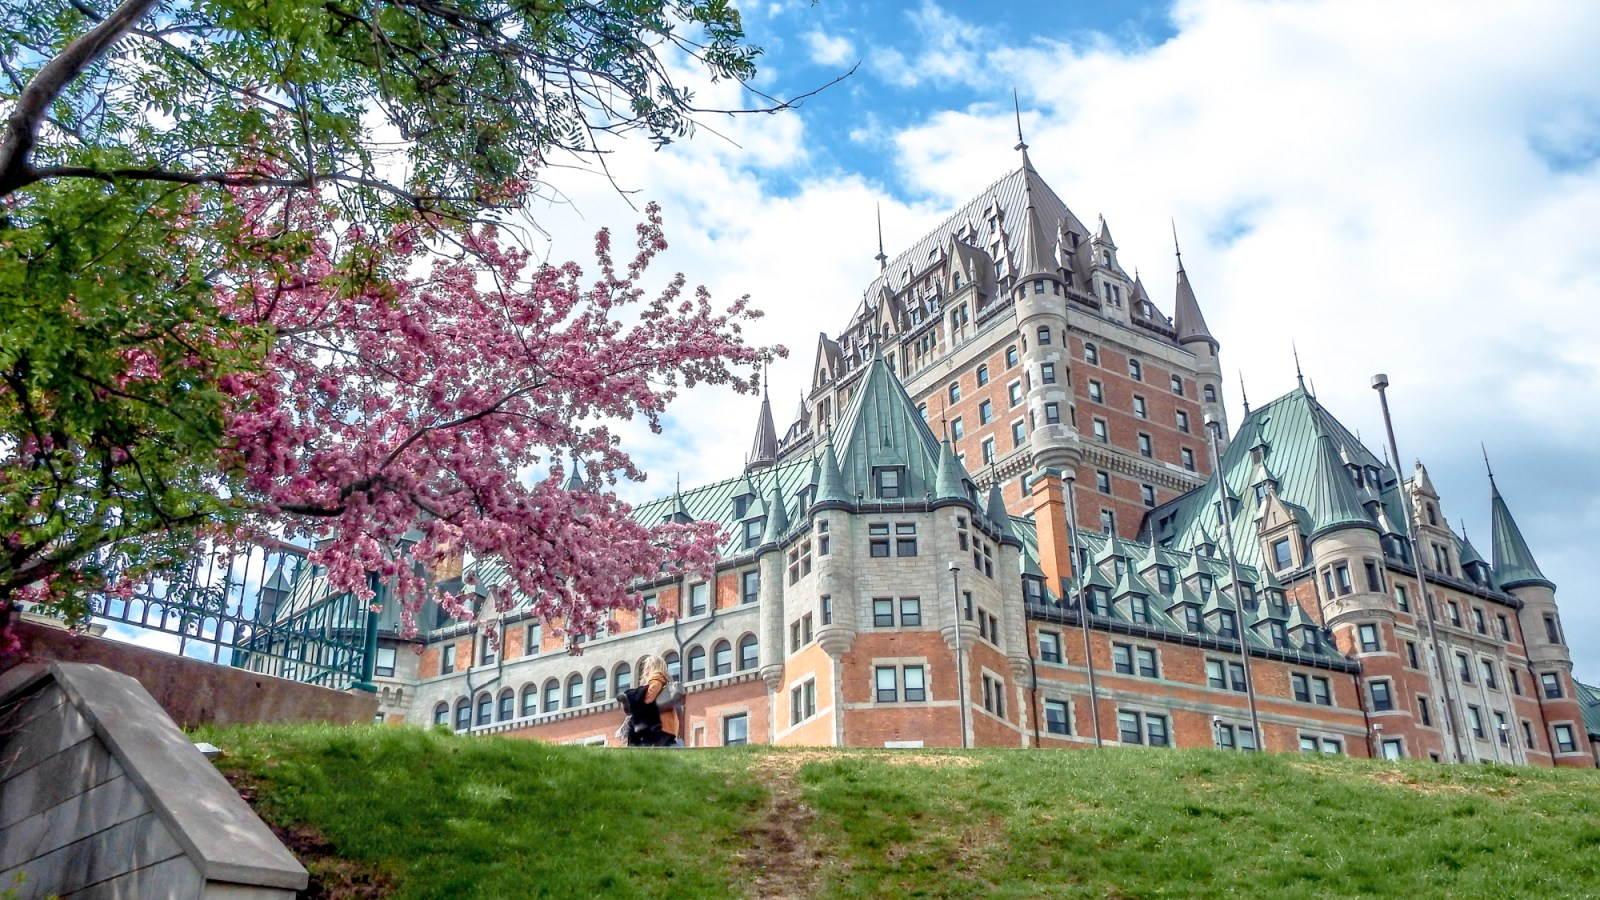 Château Frontenac, Québec City and the weekend of spoils | Canada's castle hotel